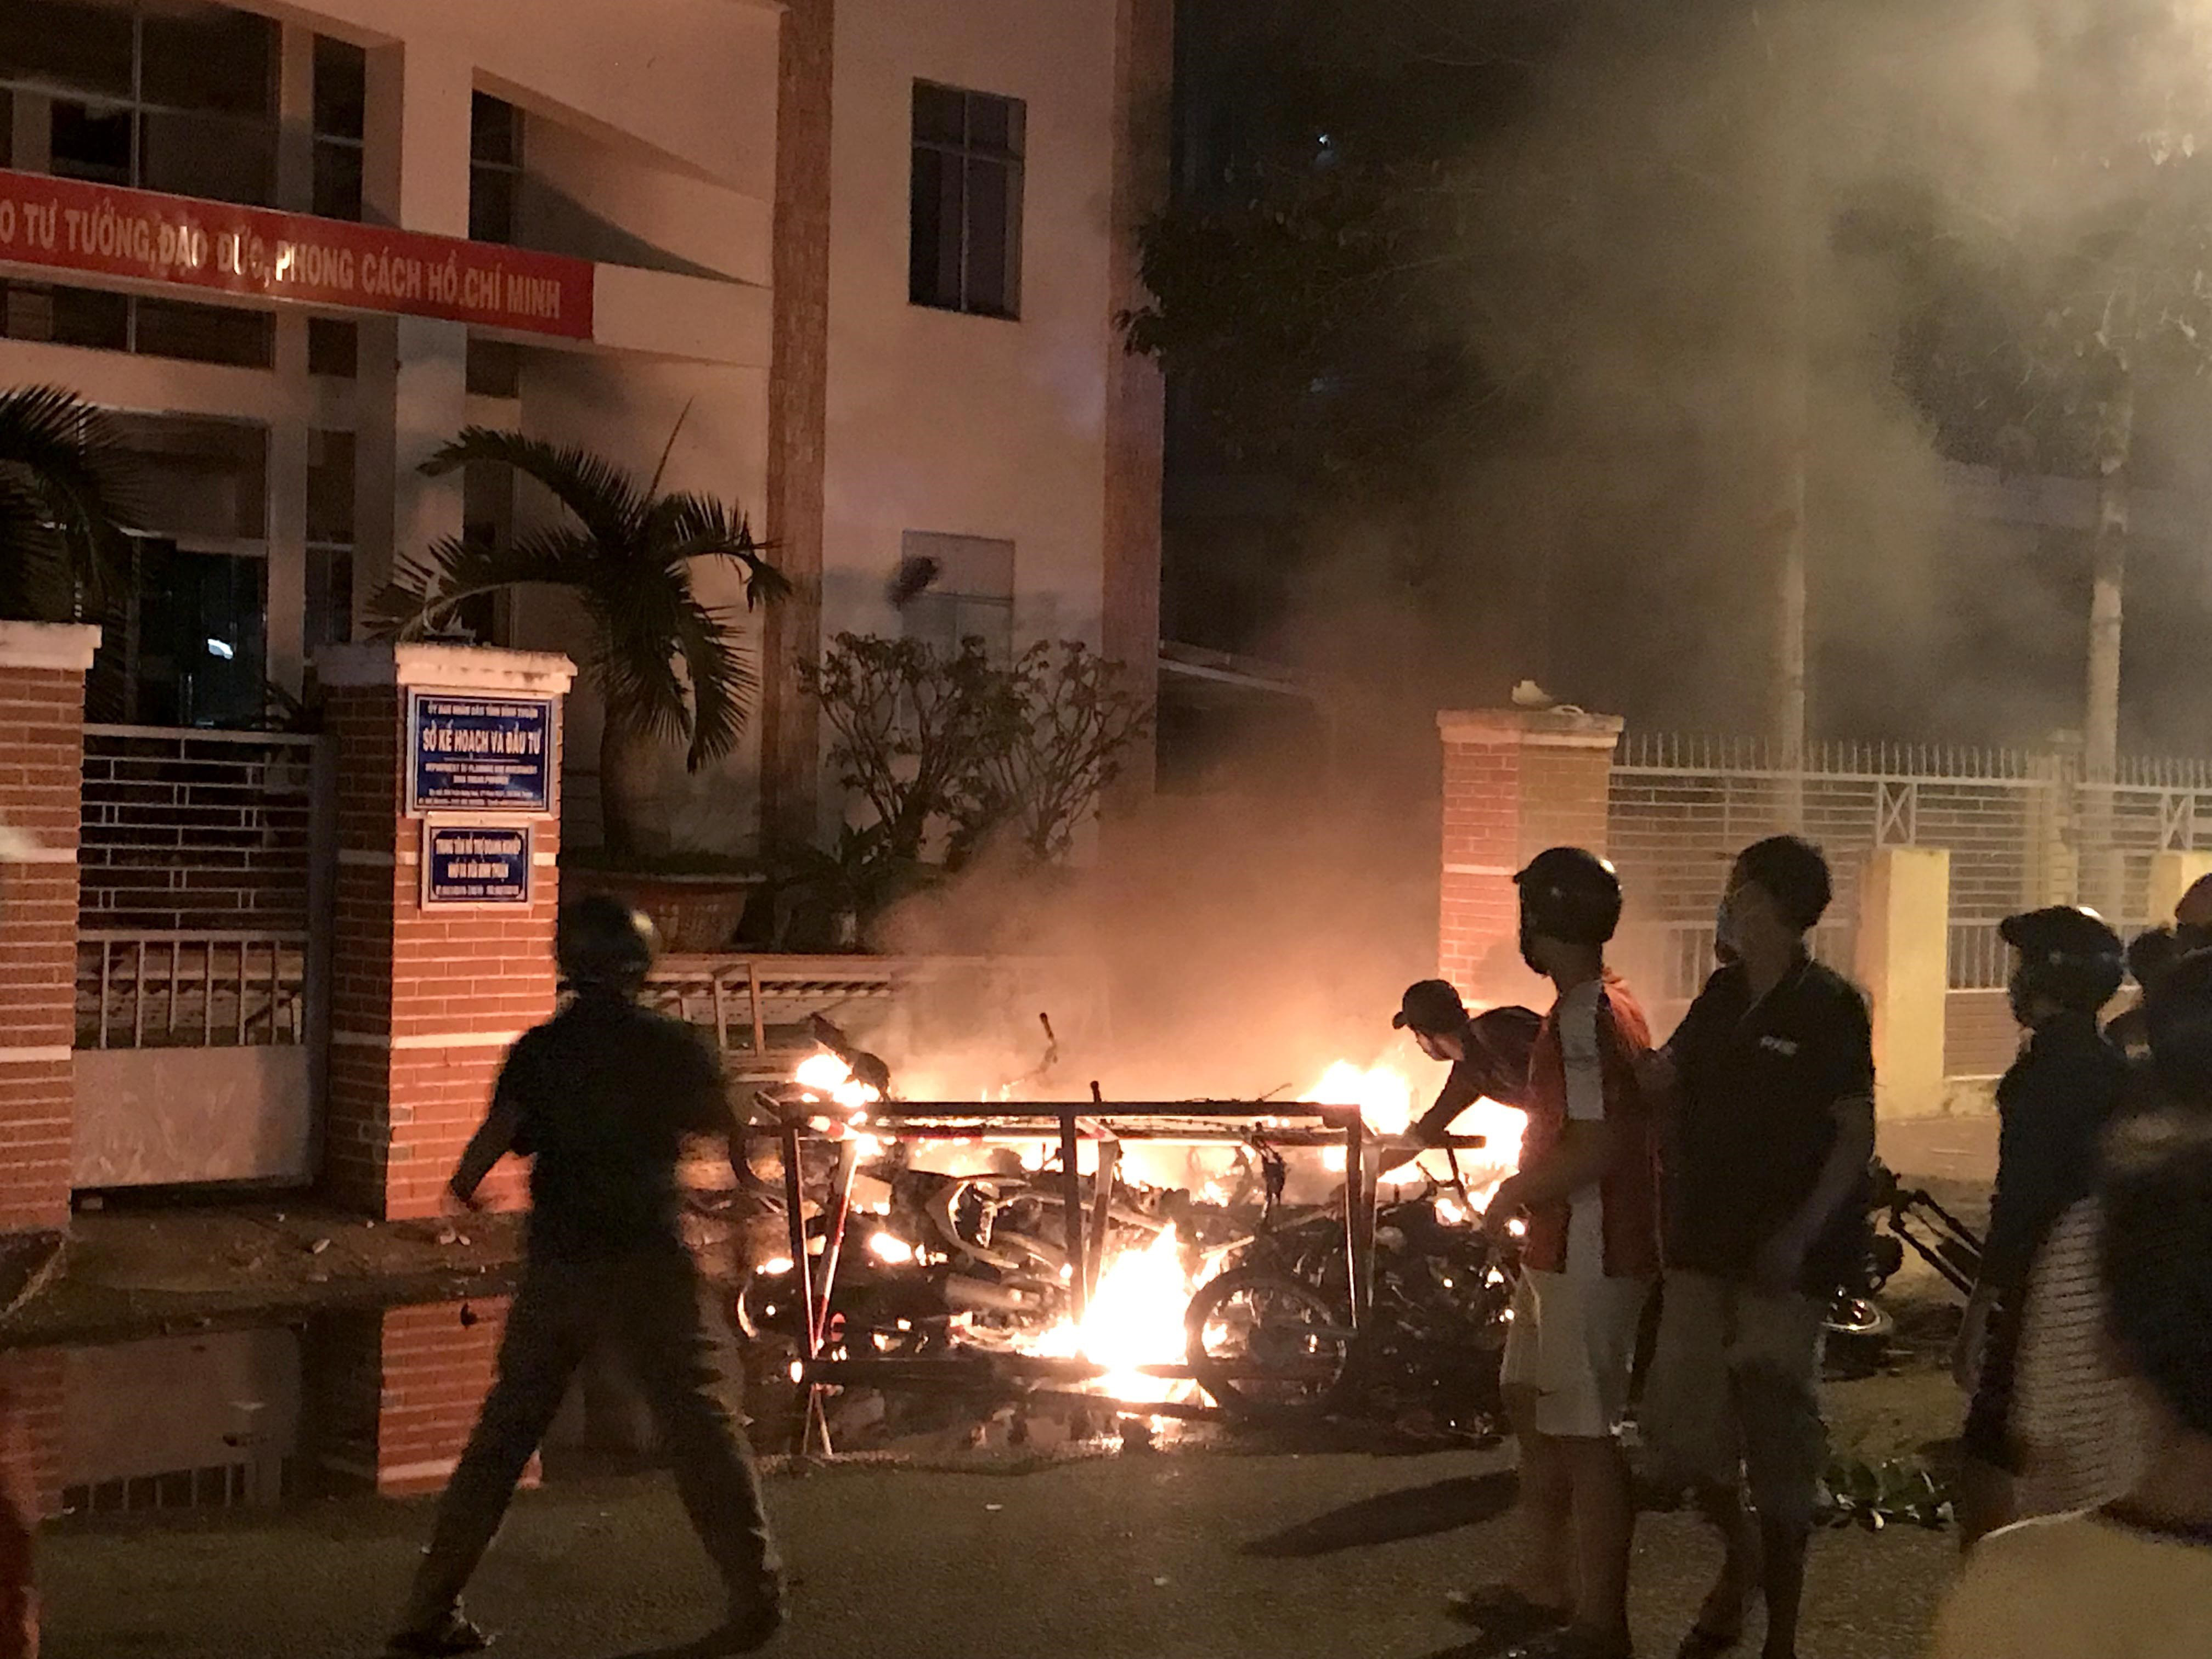 Picture taken on June 10, 2018 shows protesters burning motorcycles in front of a provincial office in Vietnam's south central coast Binh Thuan province in response to legislation on three special economic zones that would grant 99-year leases to com...